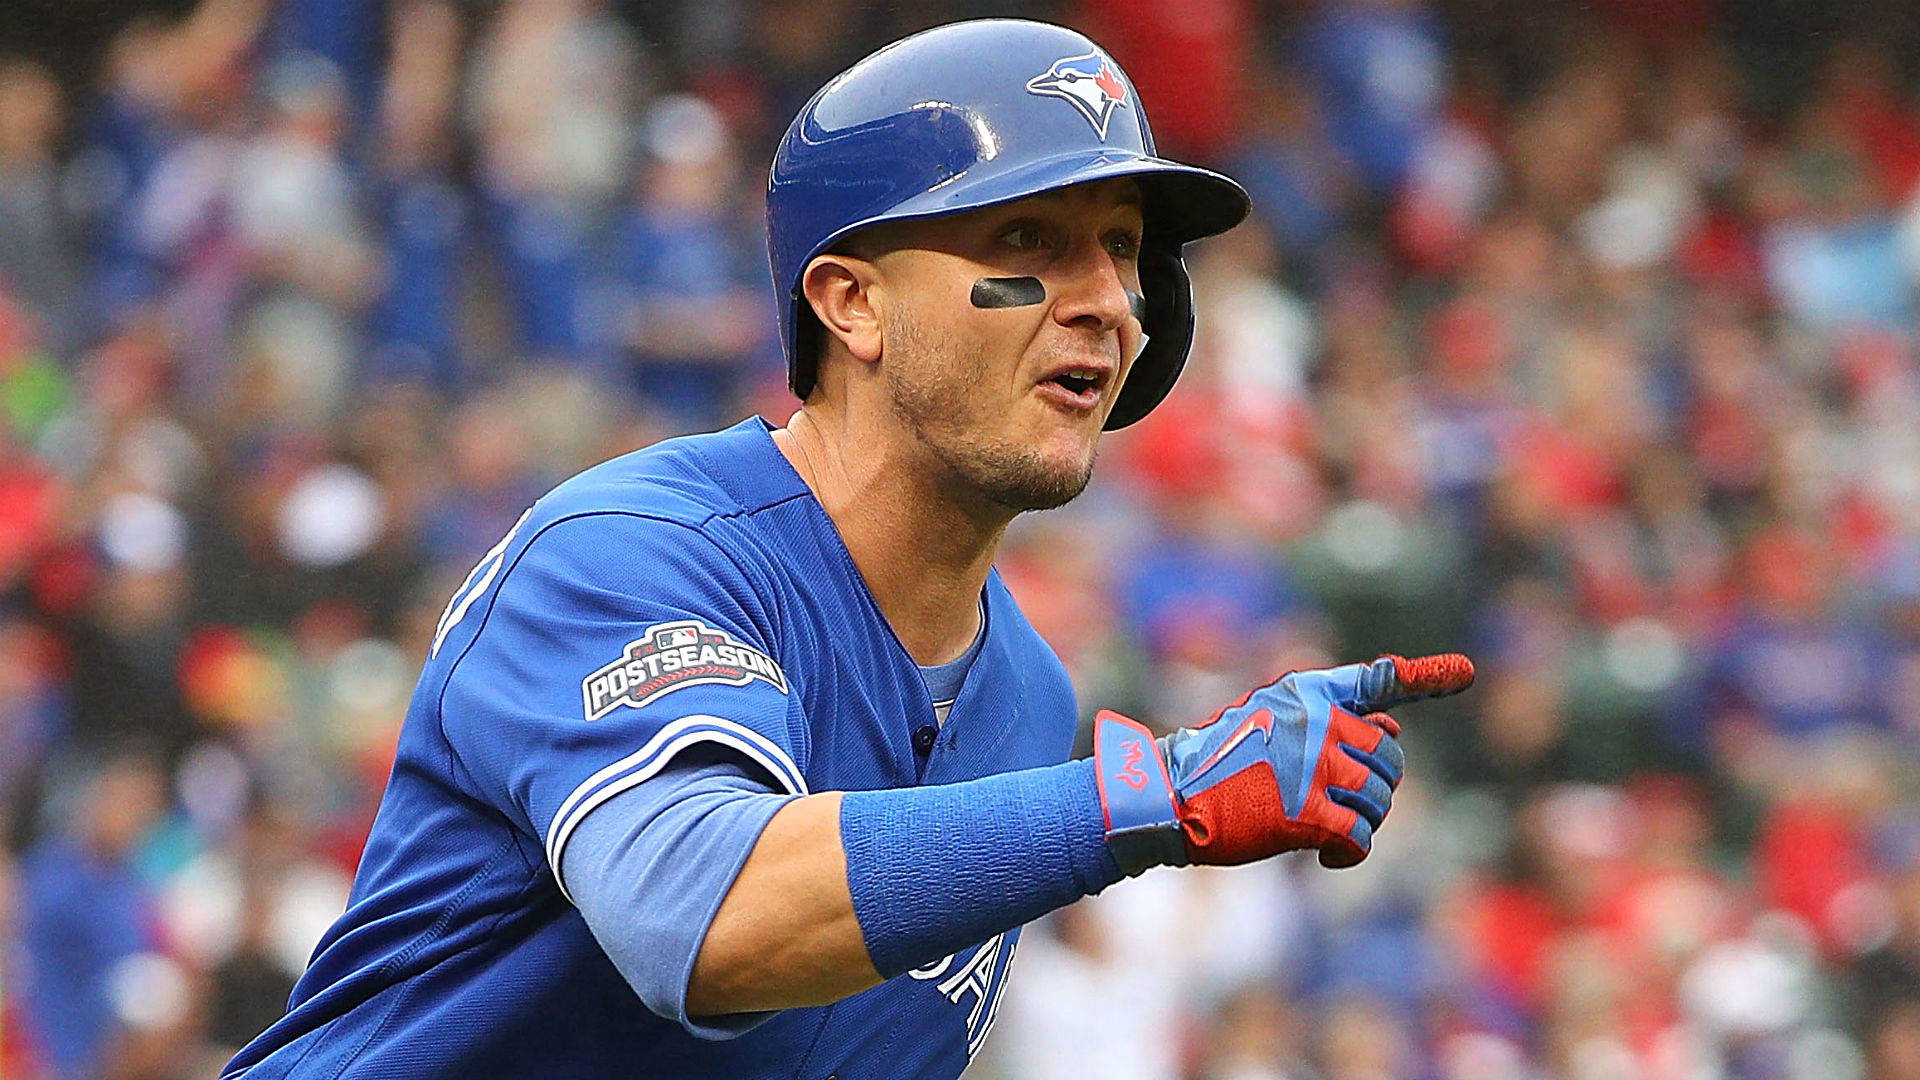 Blue Jays SS Tulowitzki exits with ankle injury